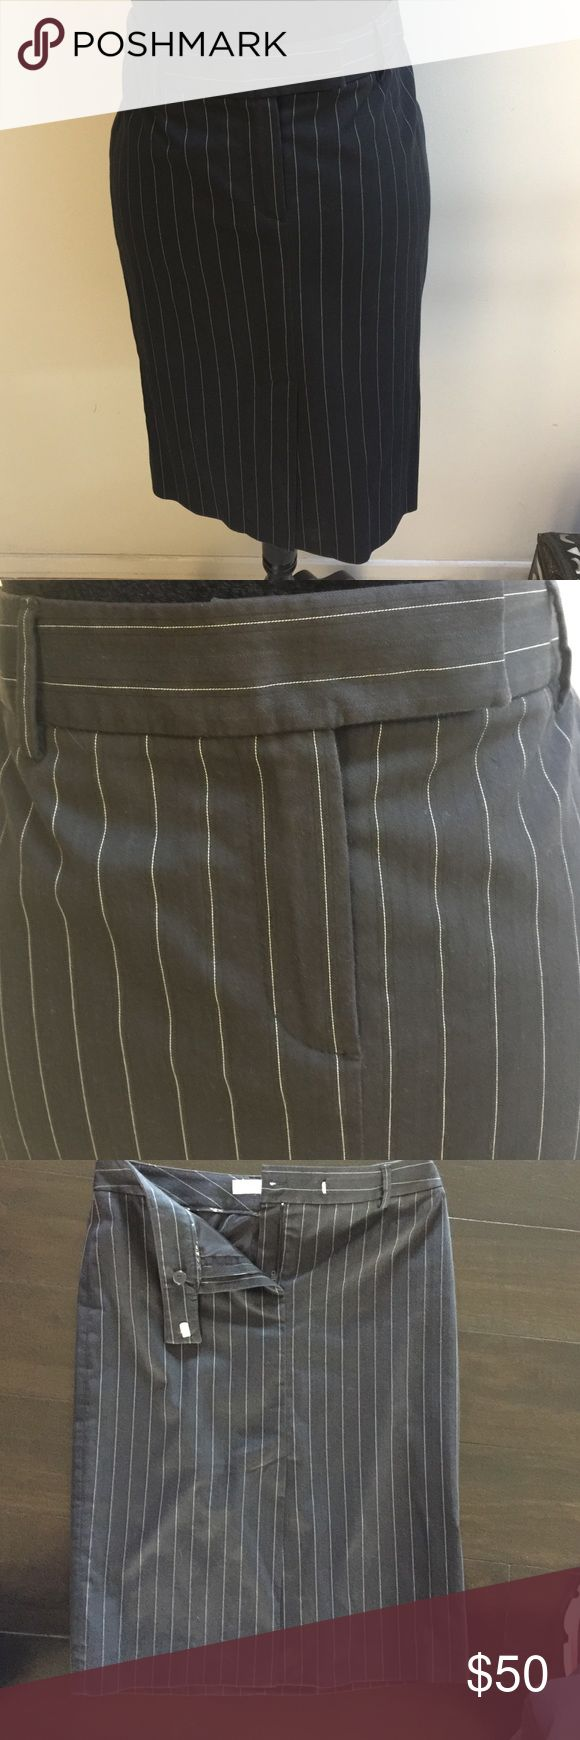 "MassimoDutti Black/white pinstripes Pencil Skirt Massimo Dutti Black with with pinstripes Pencil Skirt. Kick pleat in front. Fully Lined. 62% Cotton, 33% Polyamide, 4% Lycra. Waist is 15"" across and 23"" length. In perfect condition Massimo Dutti Skirts Pencil"